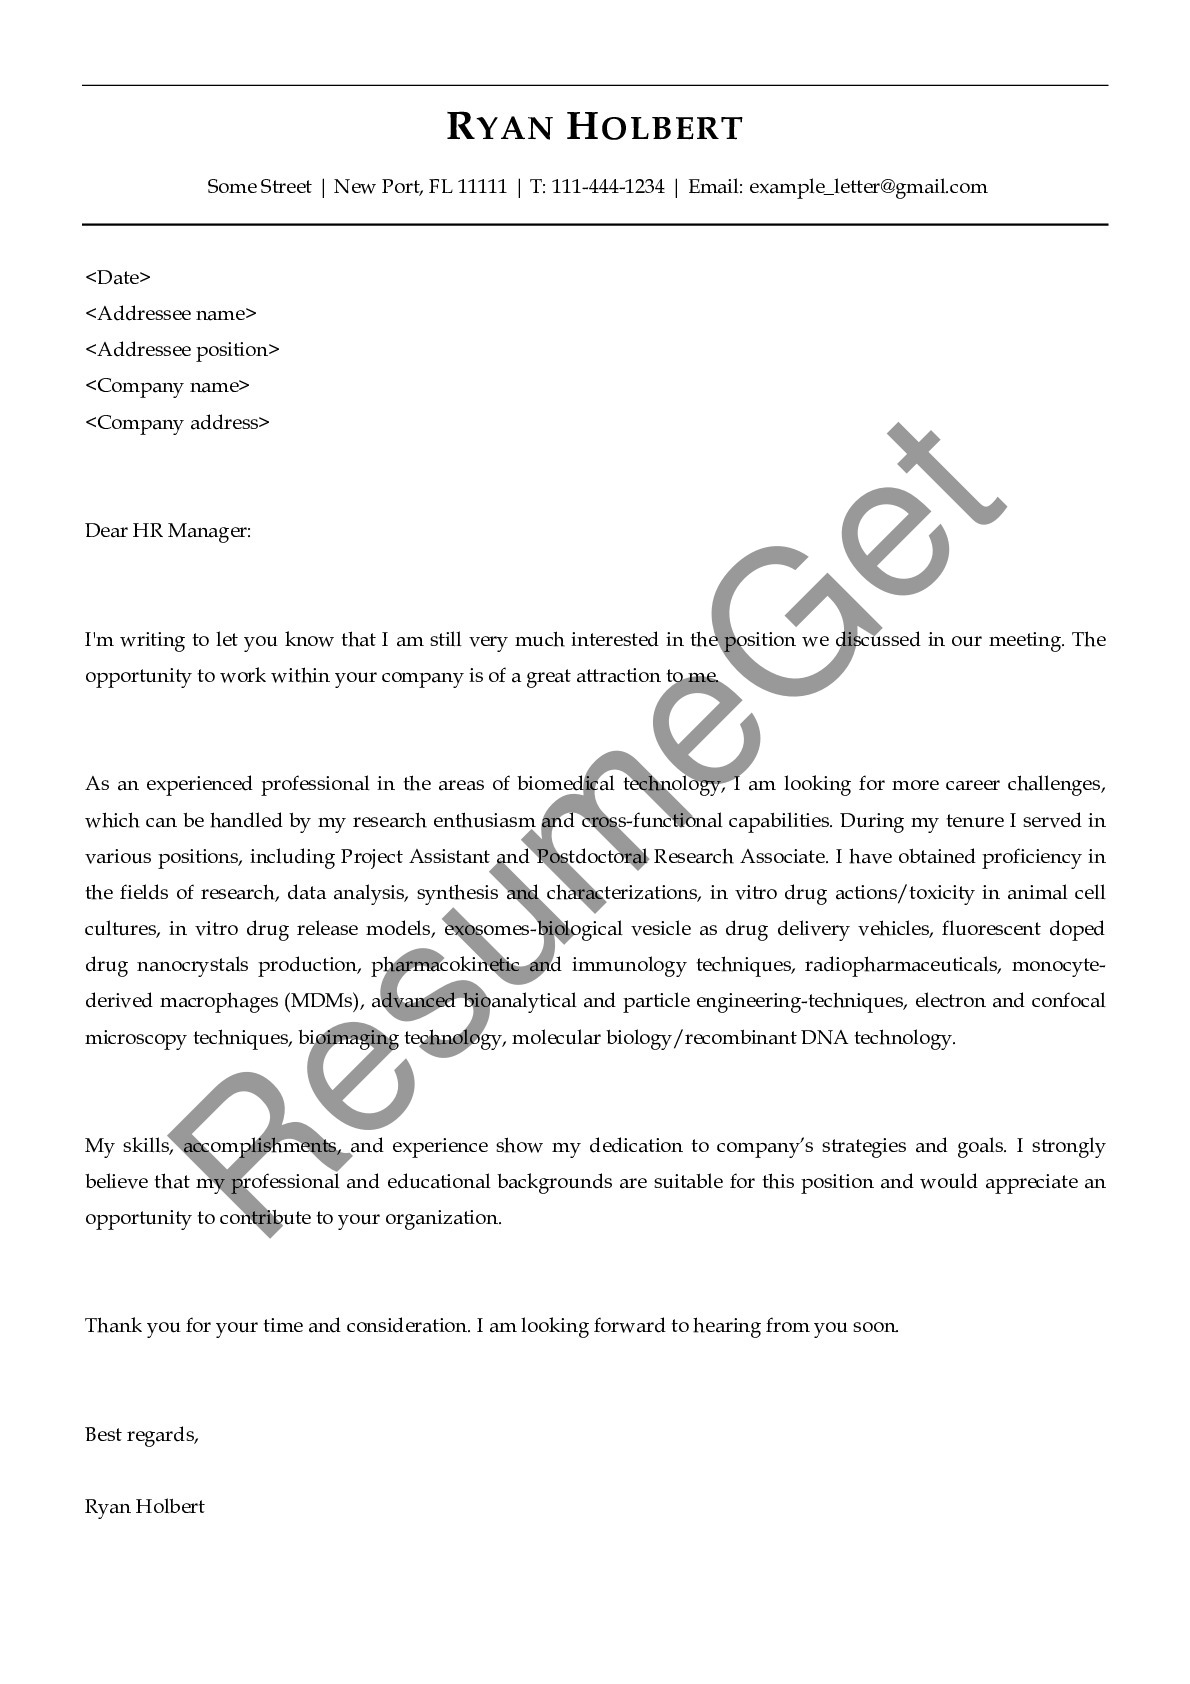 Follow Up Letter for Biomedical Professional